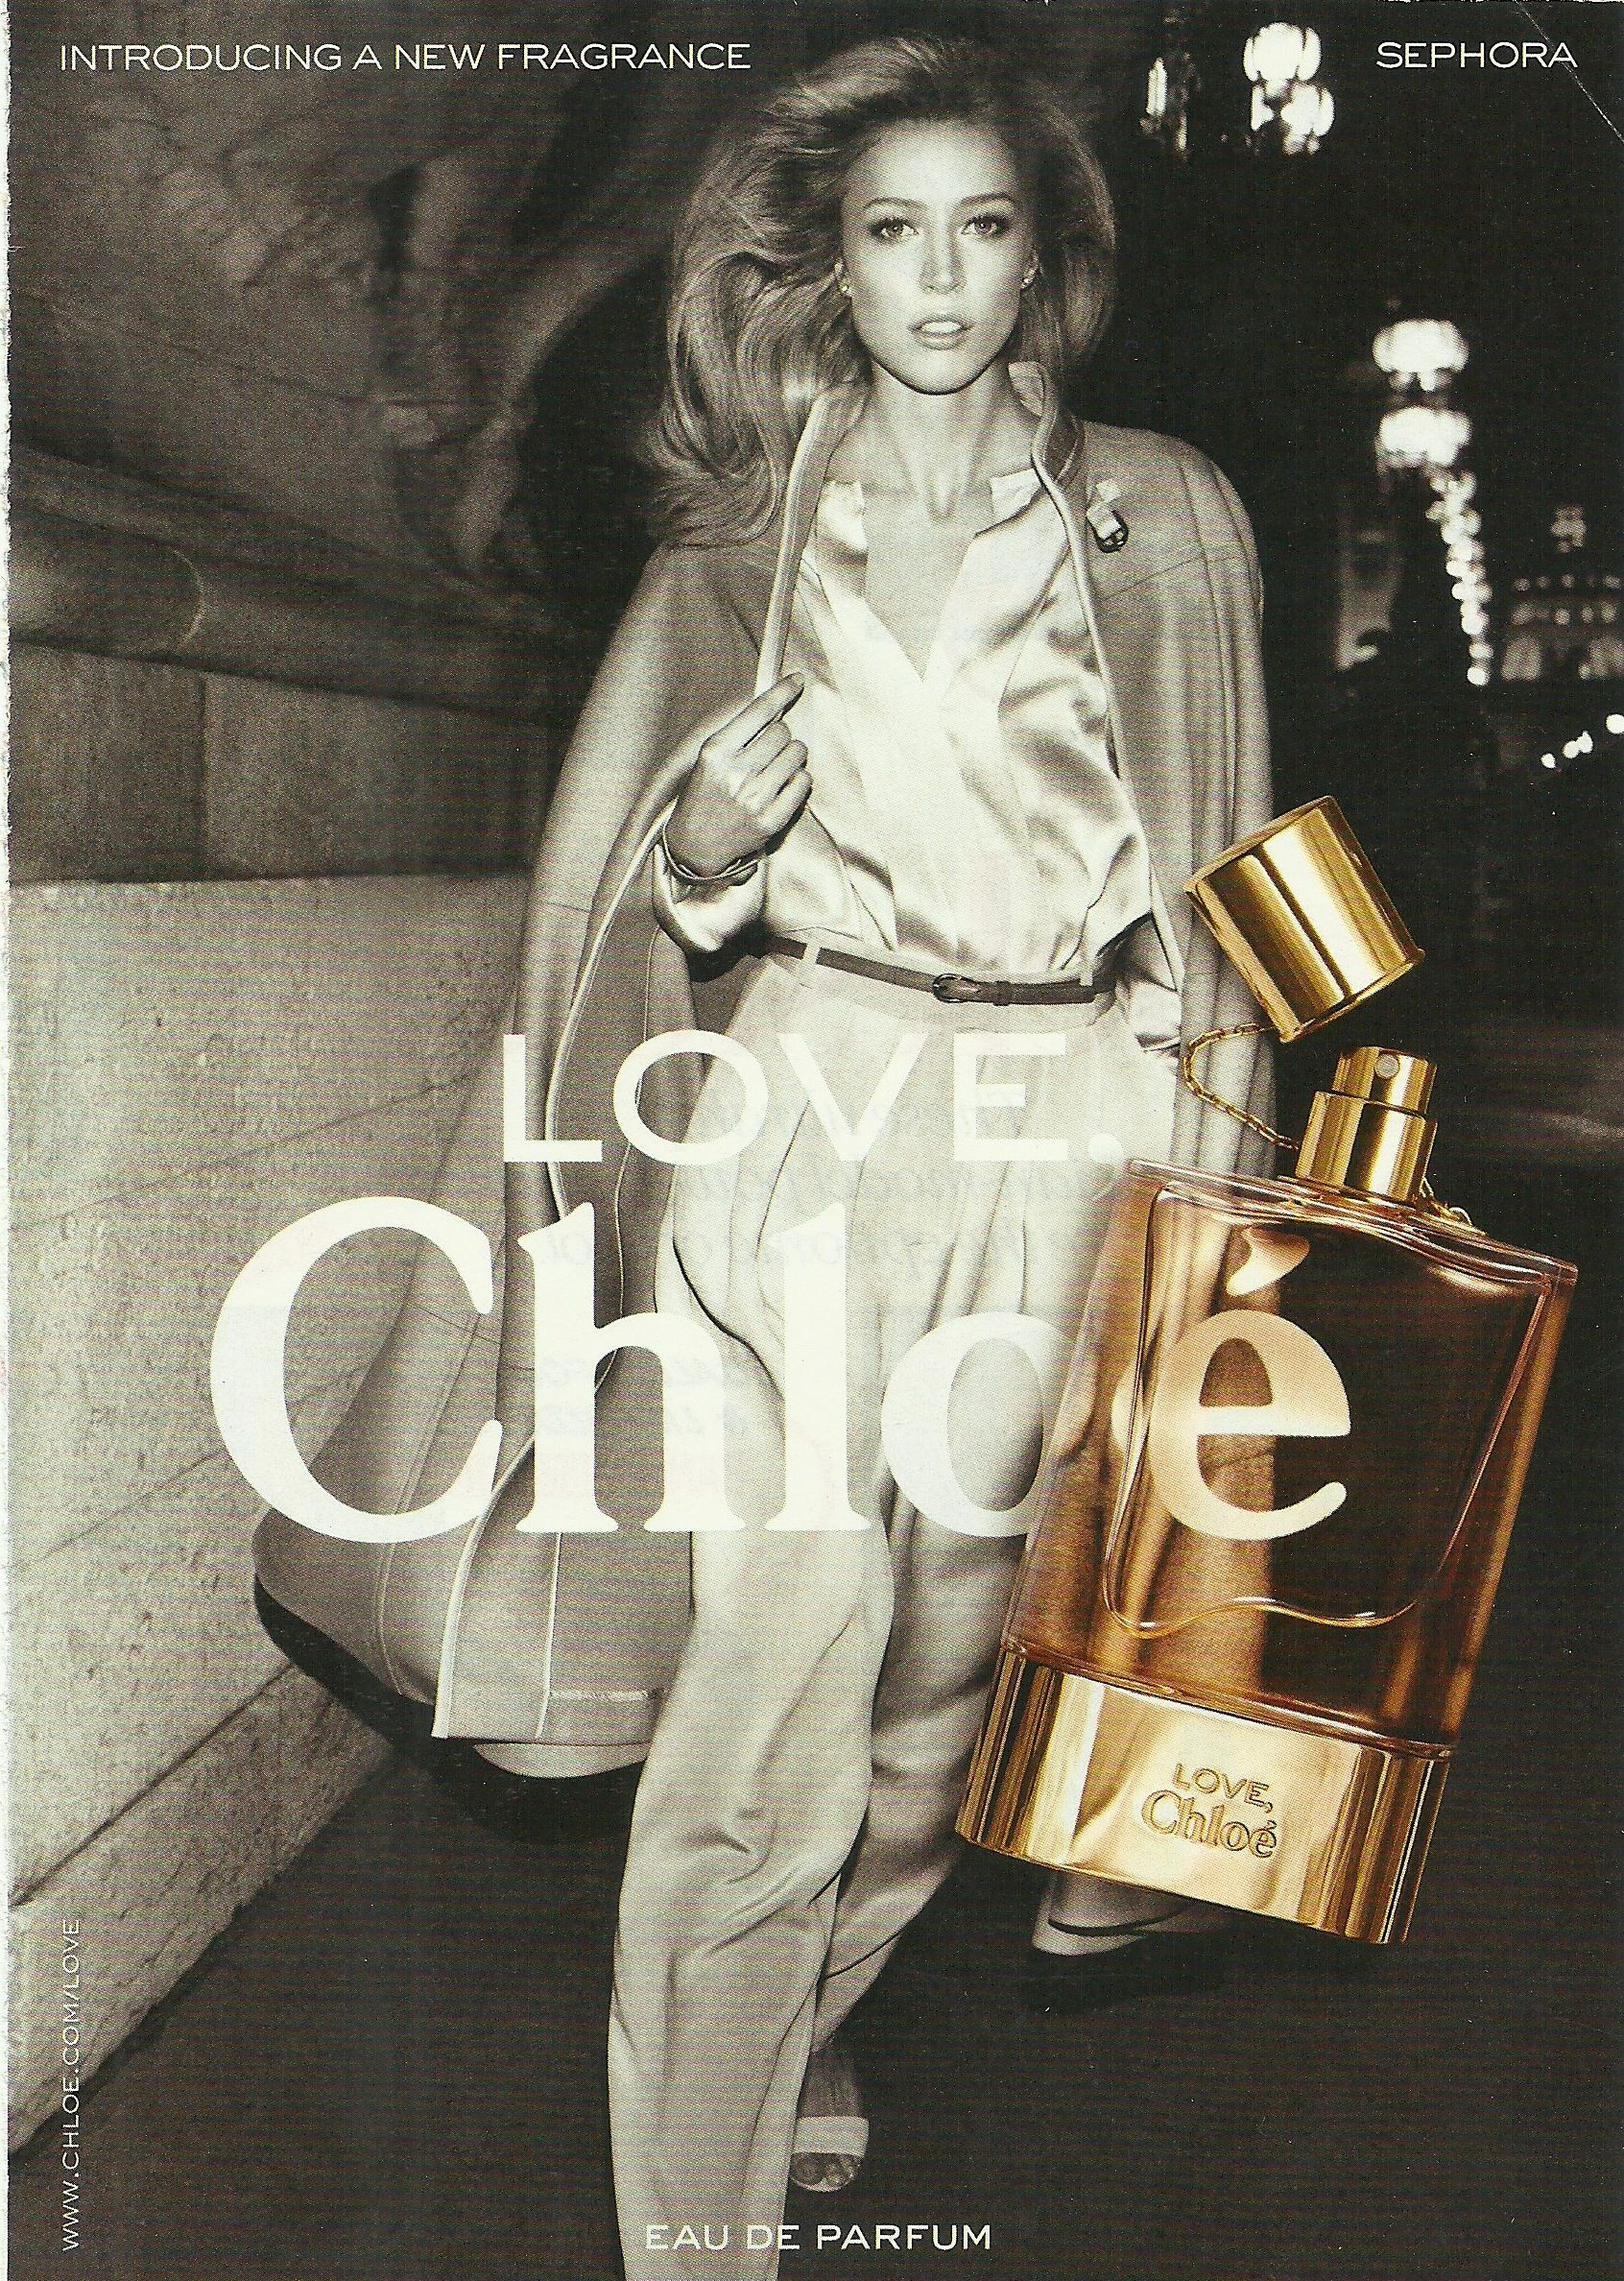 AdvertSo In Fragrance Commercial 2019 Perfume Chloe WI2YDH9beE